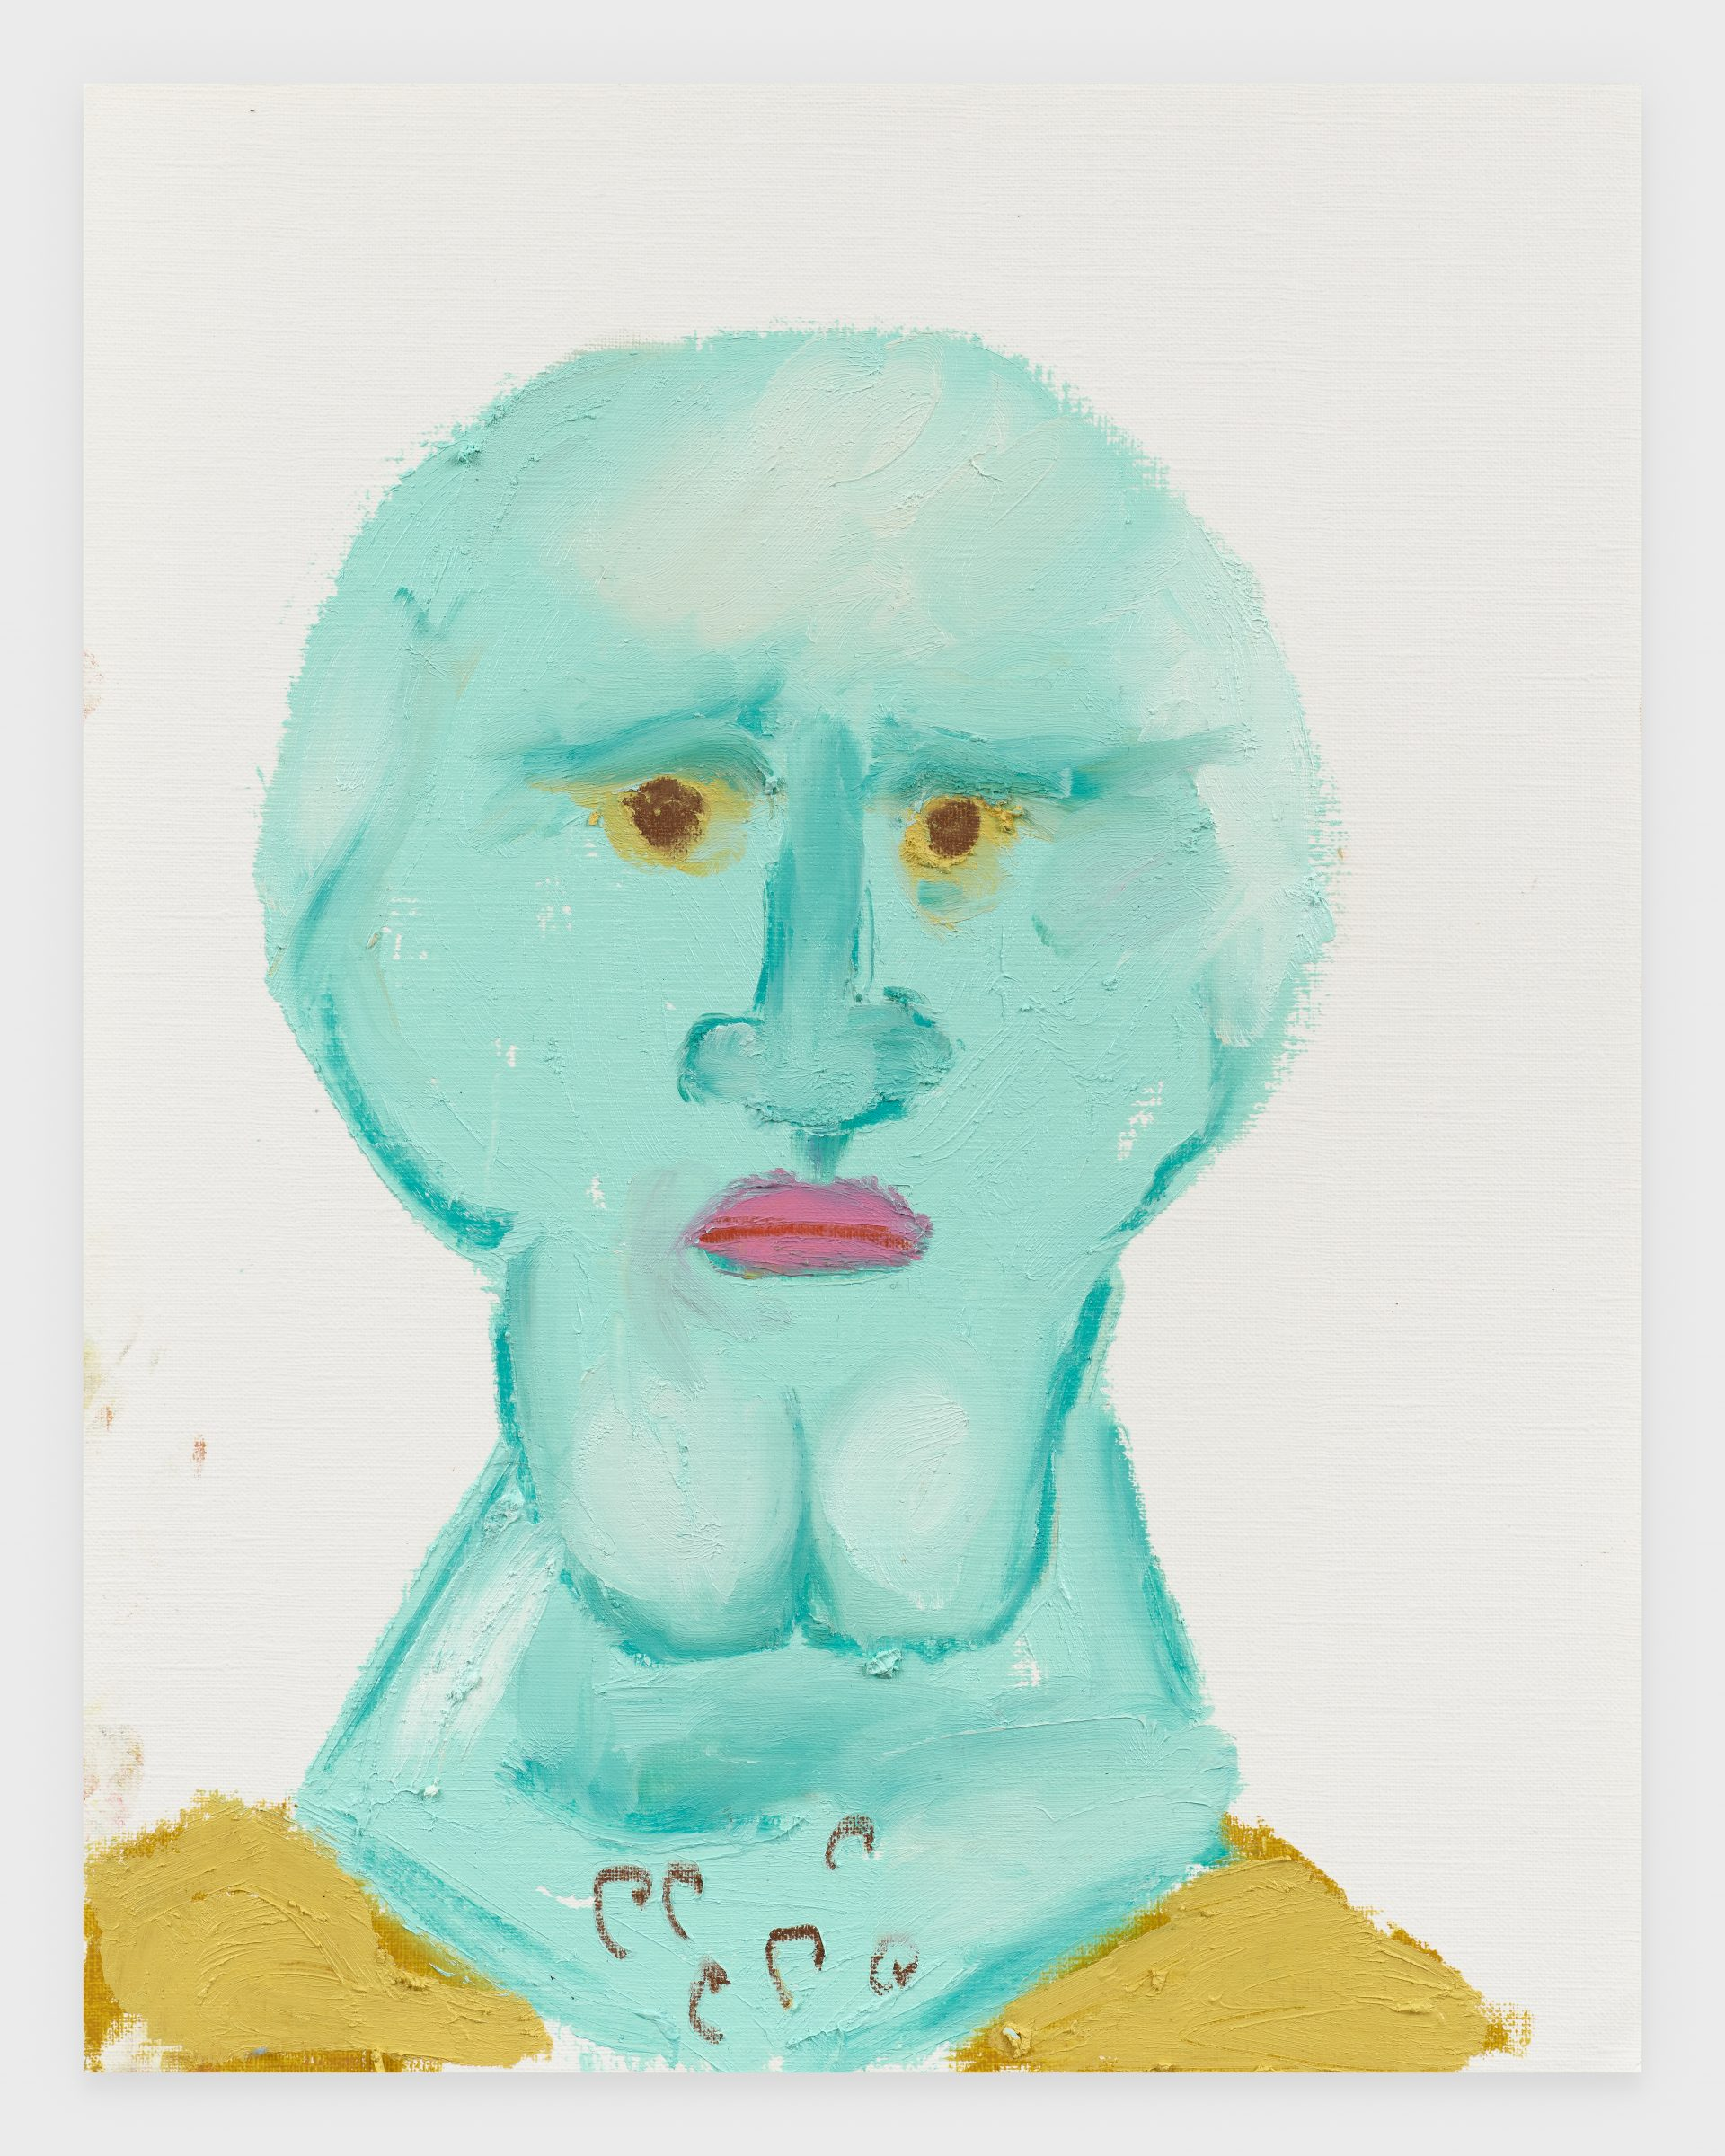 Handsome Squidward, 2020, Oil stick on archival paper, 11 x 14 inches